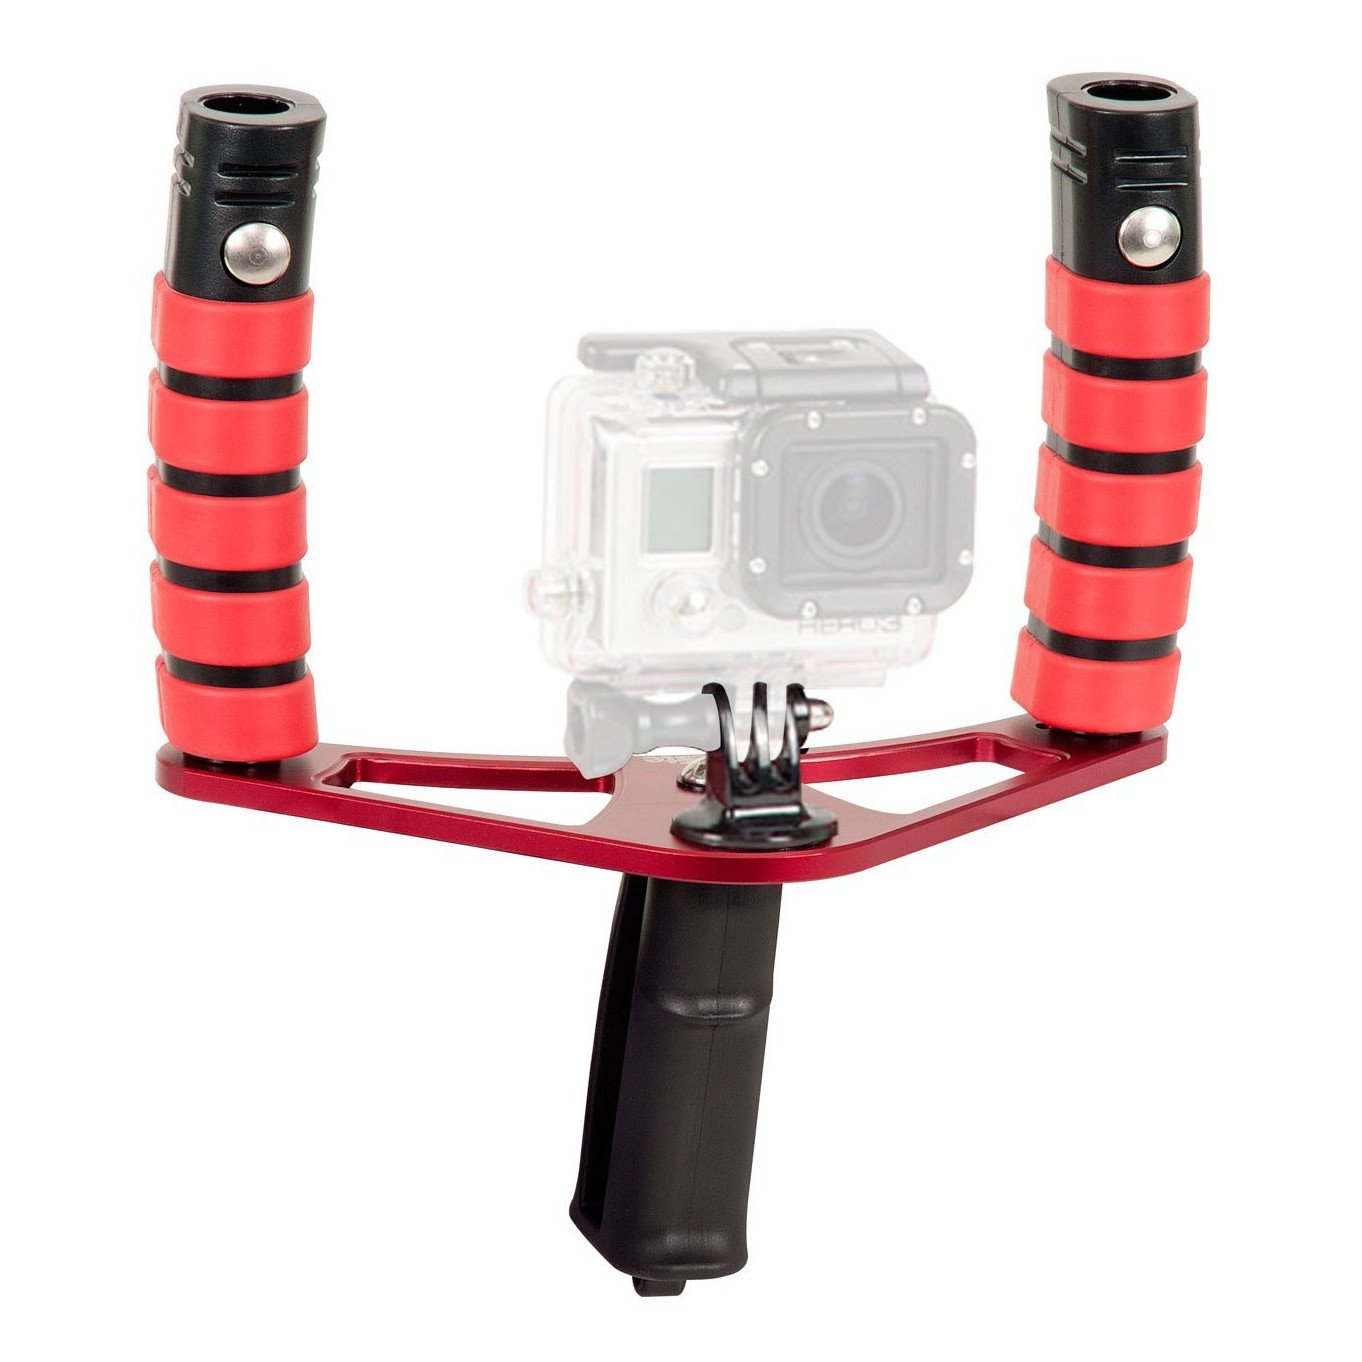 Ikelite 2602.4 Steady Tray for GoPro Kit with Handles by Ikelite